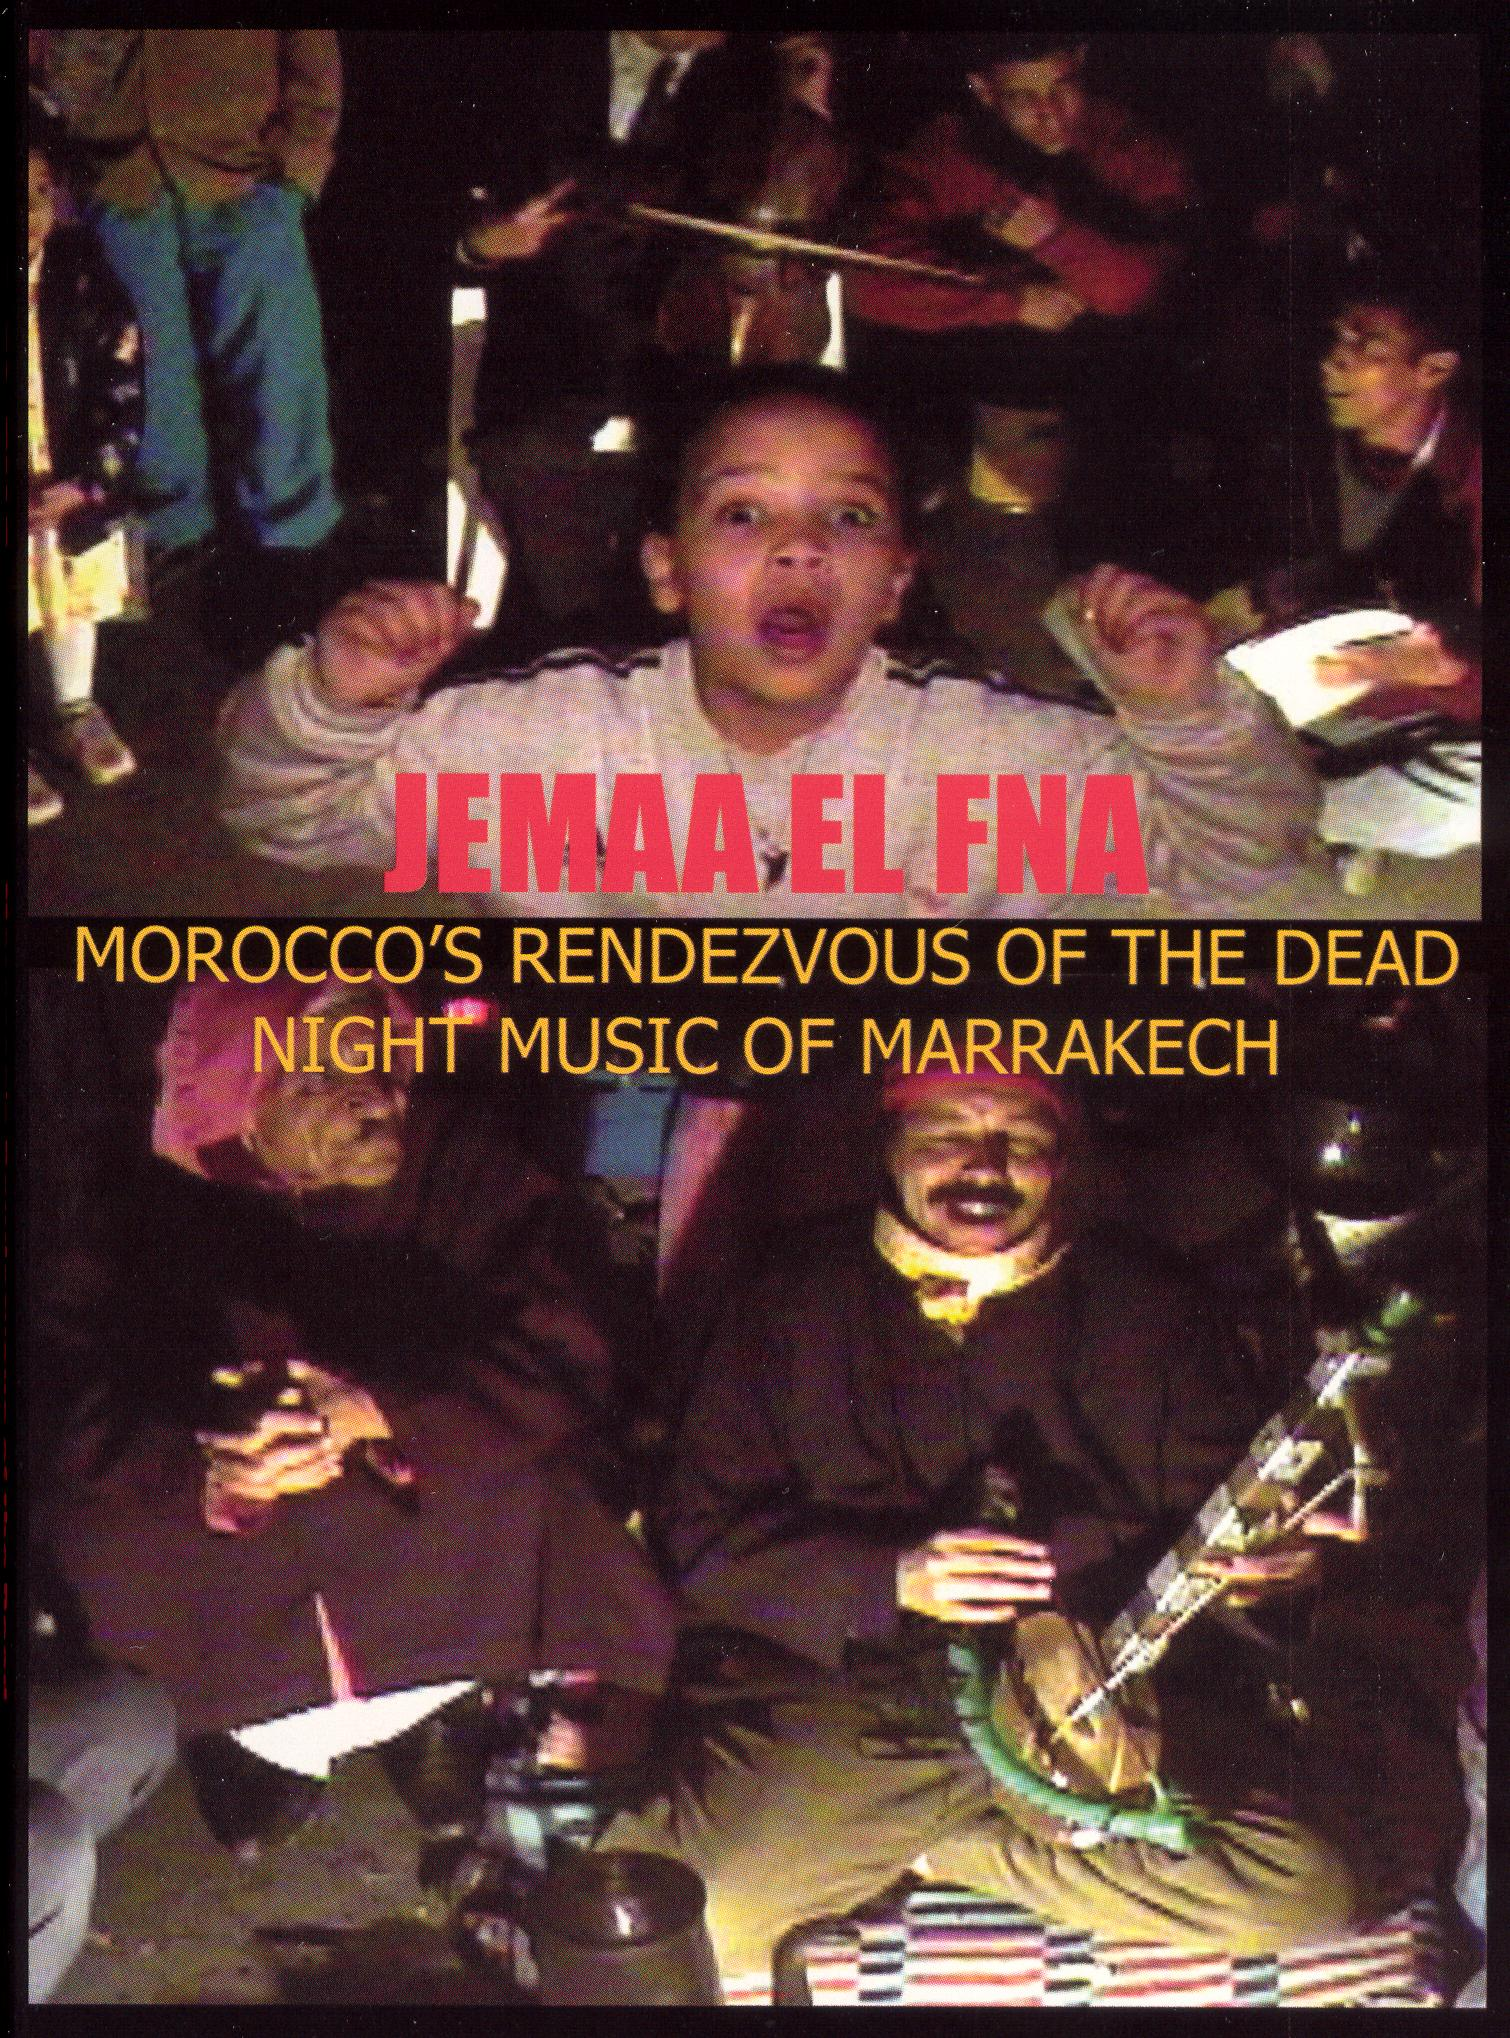 Jemaa El Fna: Morocco's Rendezvous of the Dead - Night Music of Marrakech